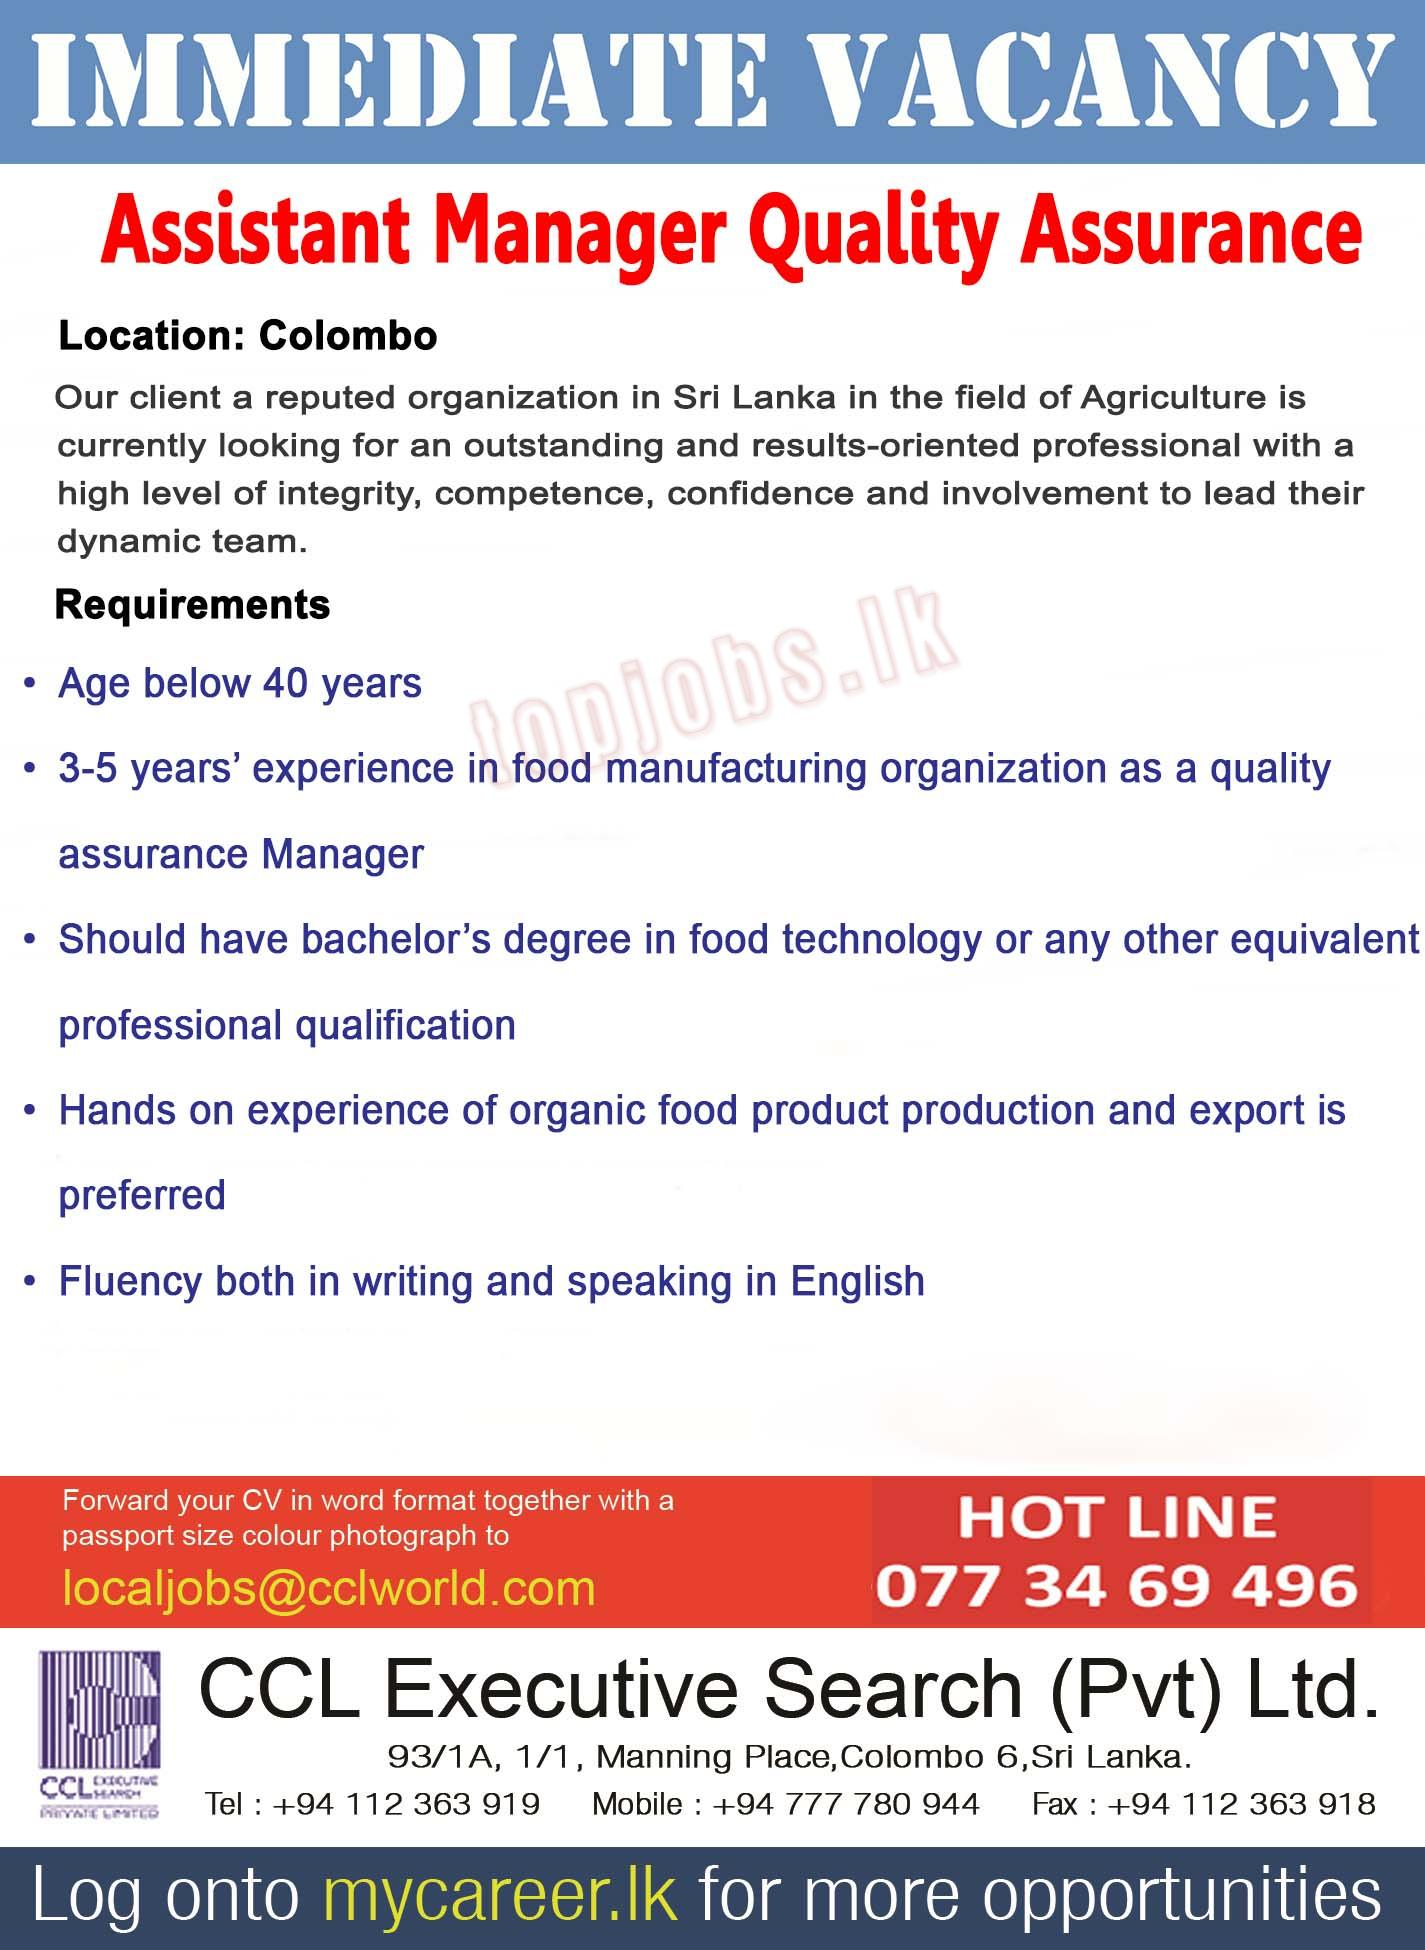 704c-Assistant-Manager-Quality-Assurance